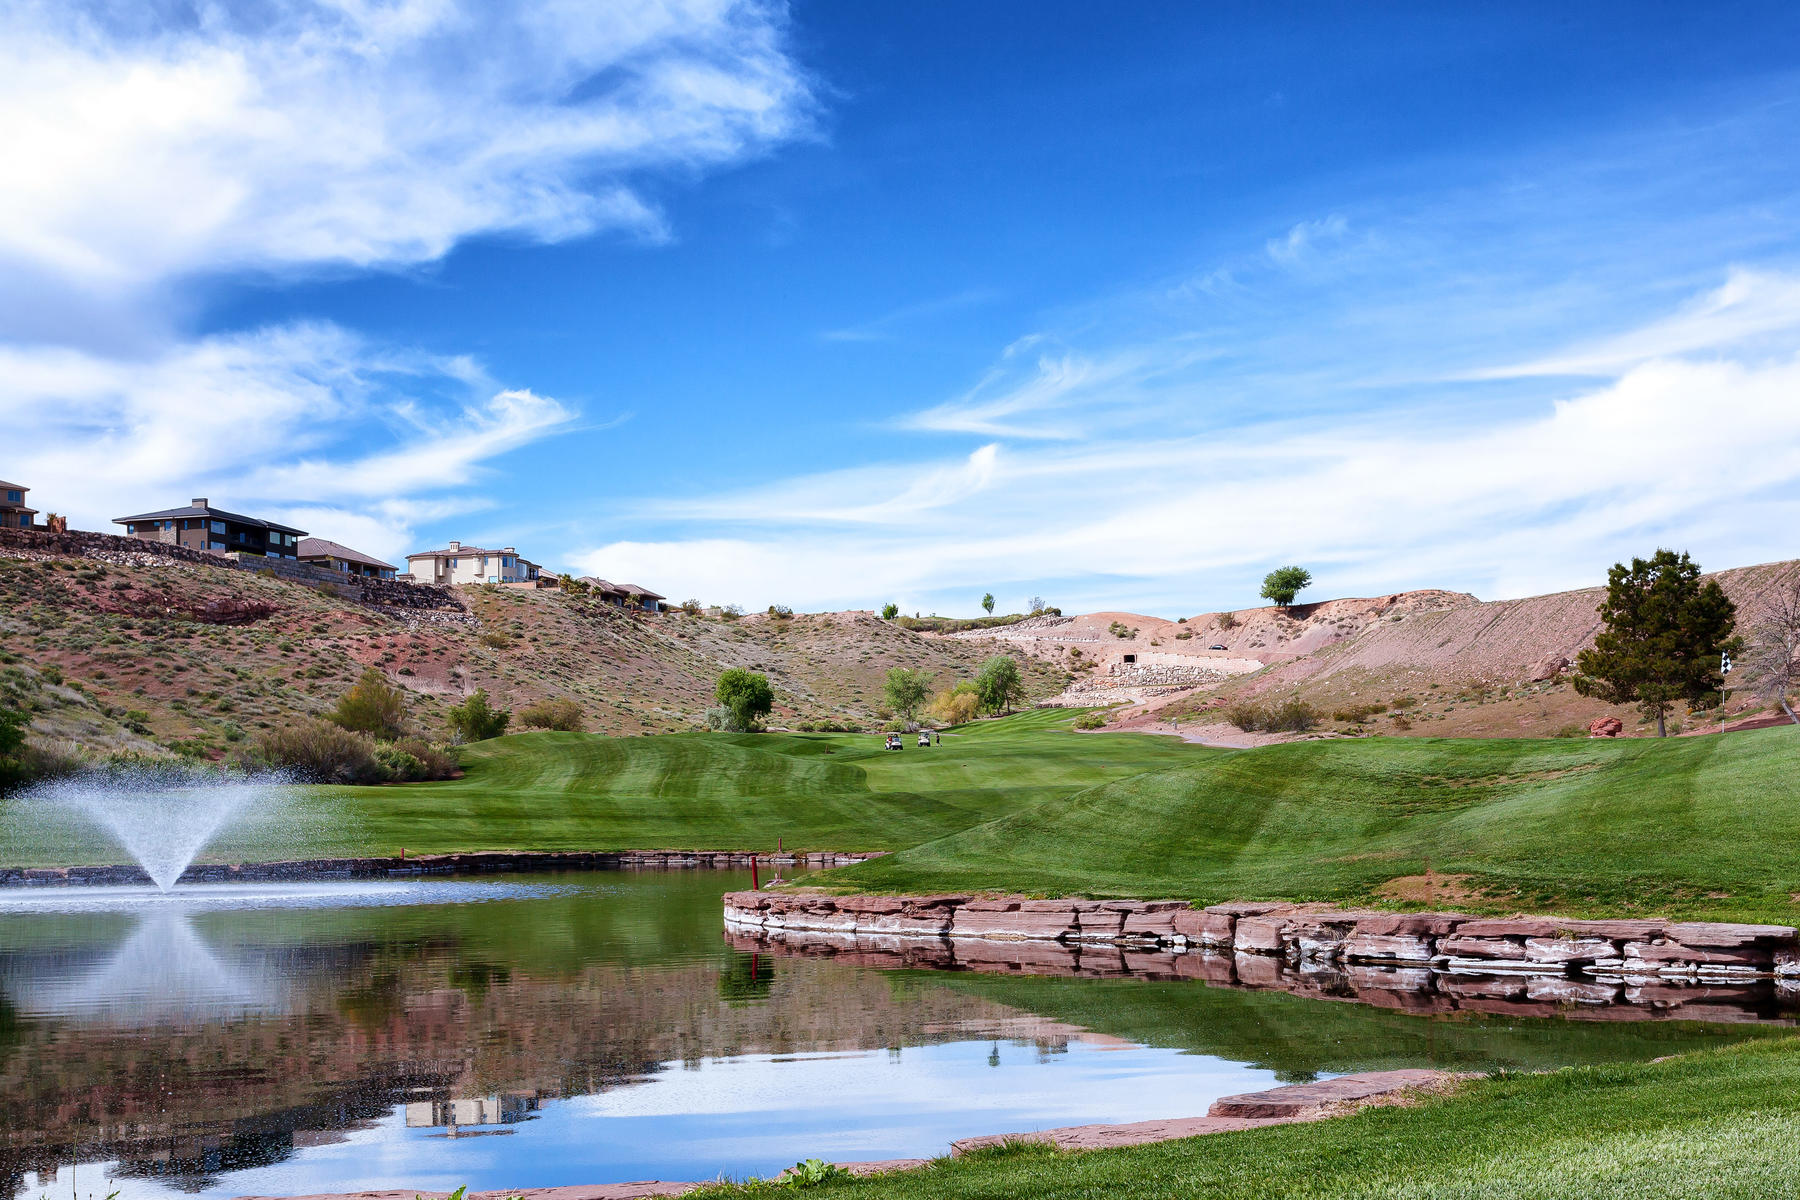 Terreno per Vendita alle ore View Lot on Sunbrook Golf Course 335 S Luce Del Sol Dr Lot #10 St. George, Utah, 84770 Stati Uniti